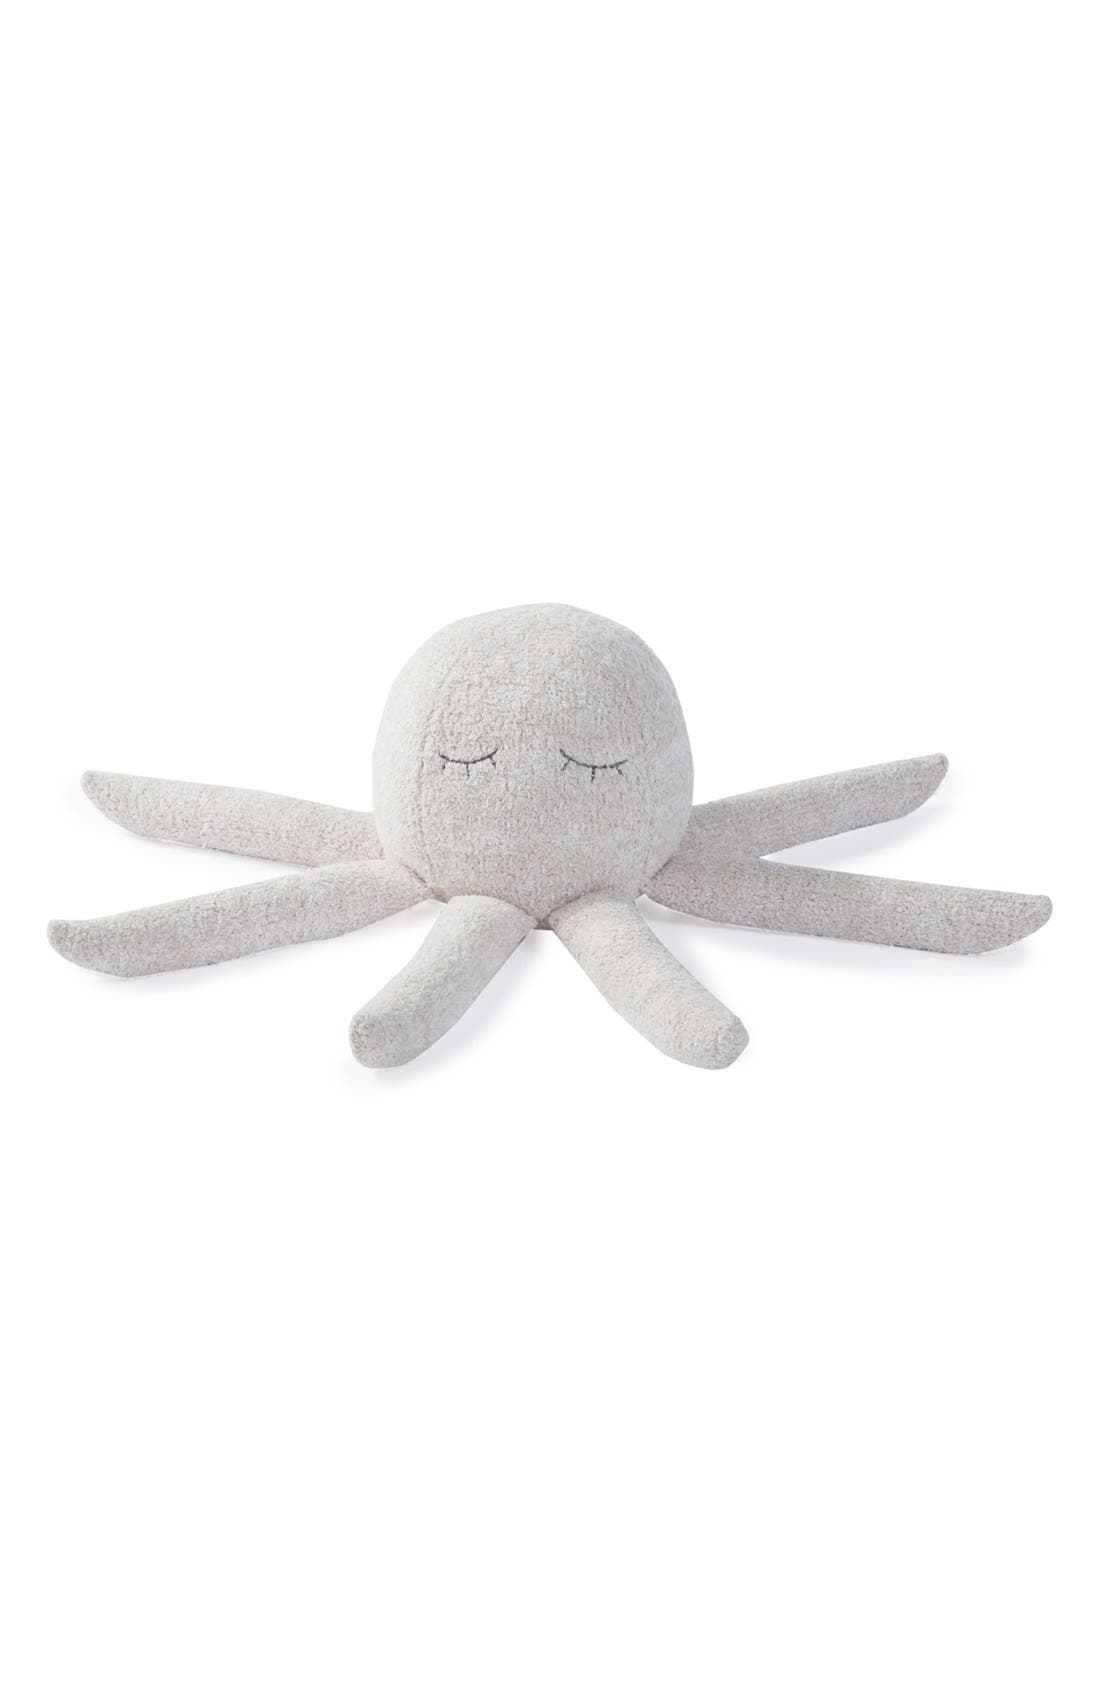 'CozyChic<sup>®</sup> Octopus Buddie' Plush Toy,                         Main,                         color, Stone/White